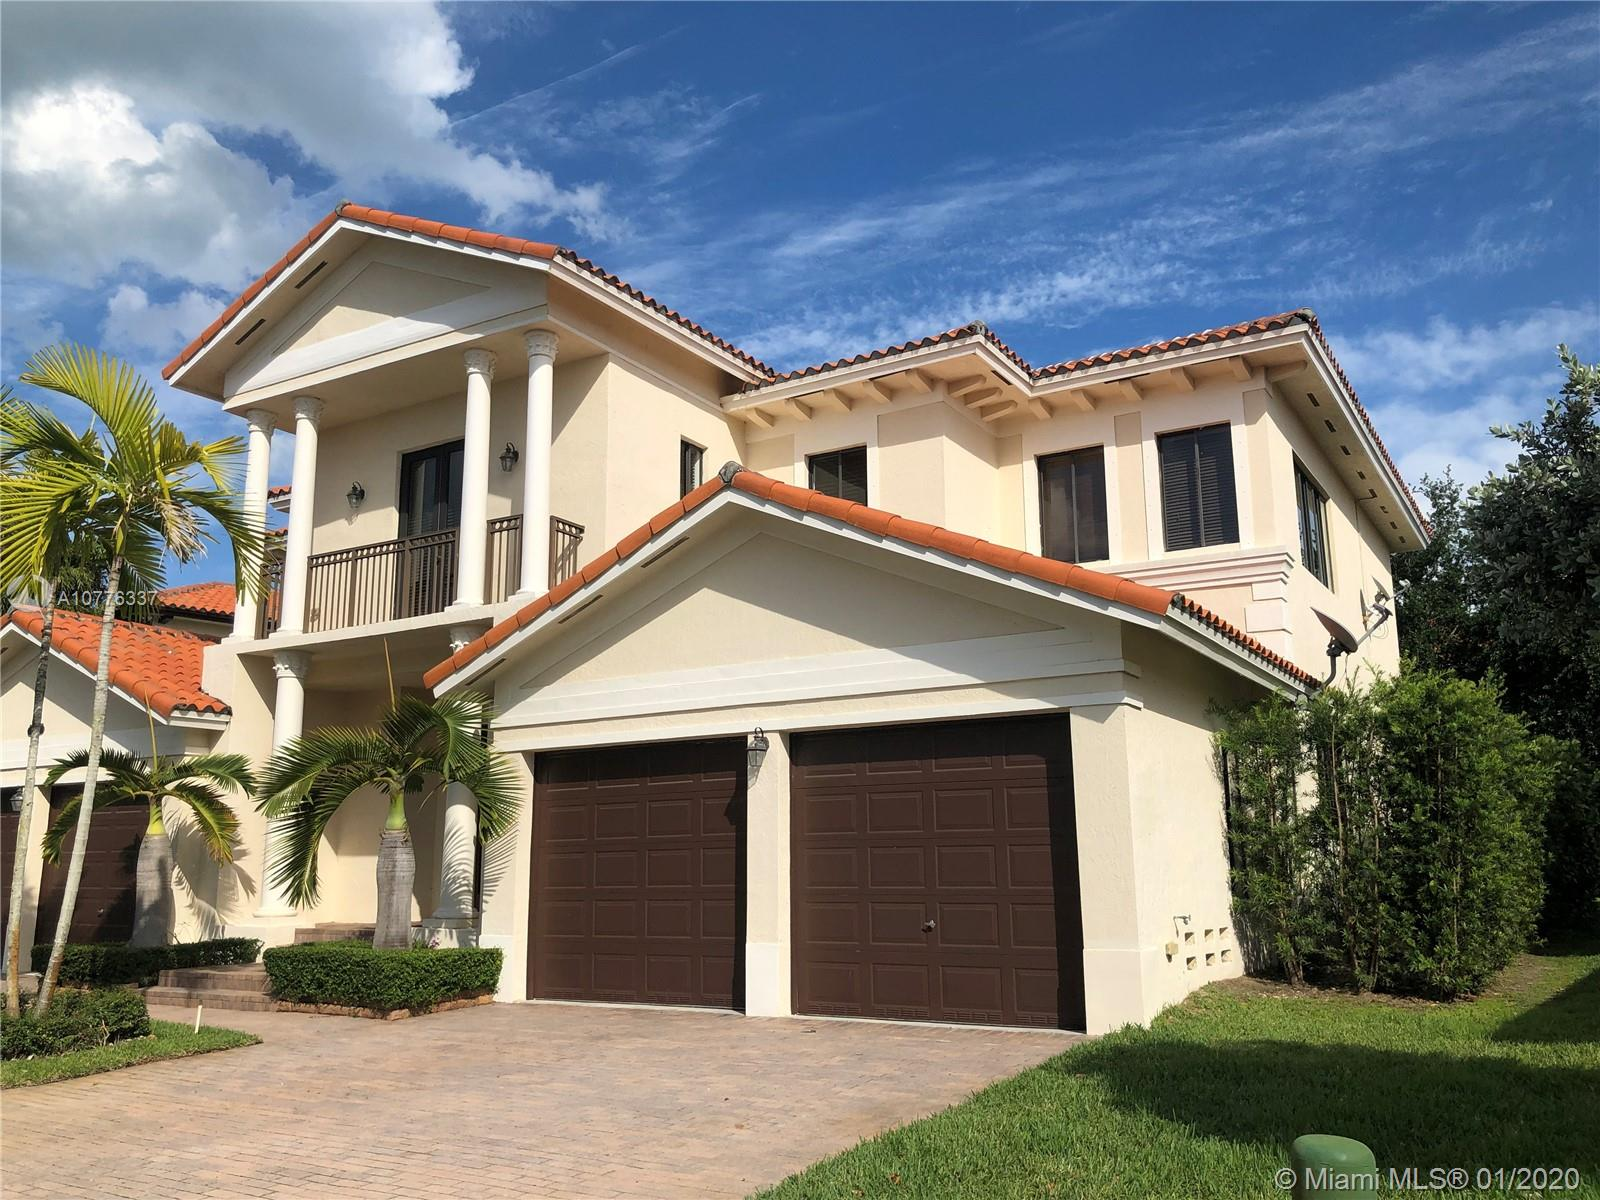 7534 SW 188th Terr, Kendall in Miami-dade County County, FL 33157 Home for Sale